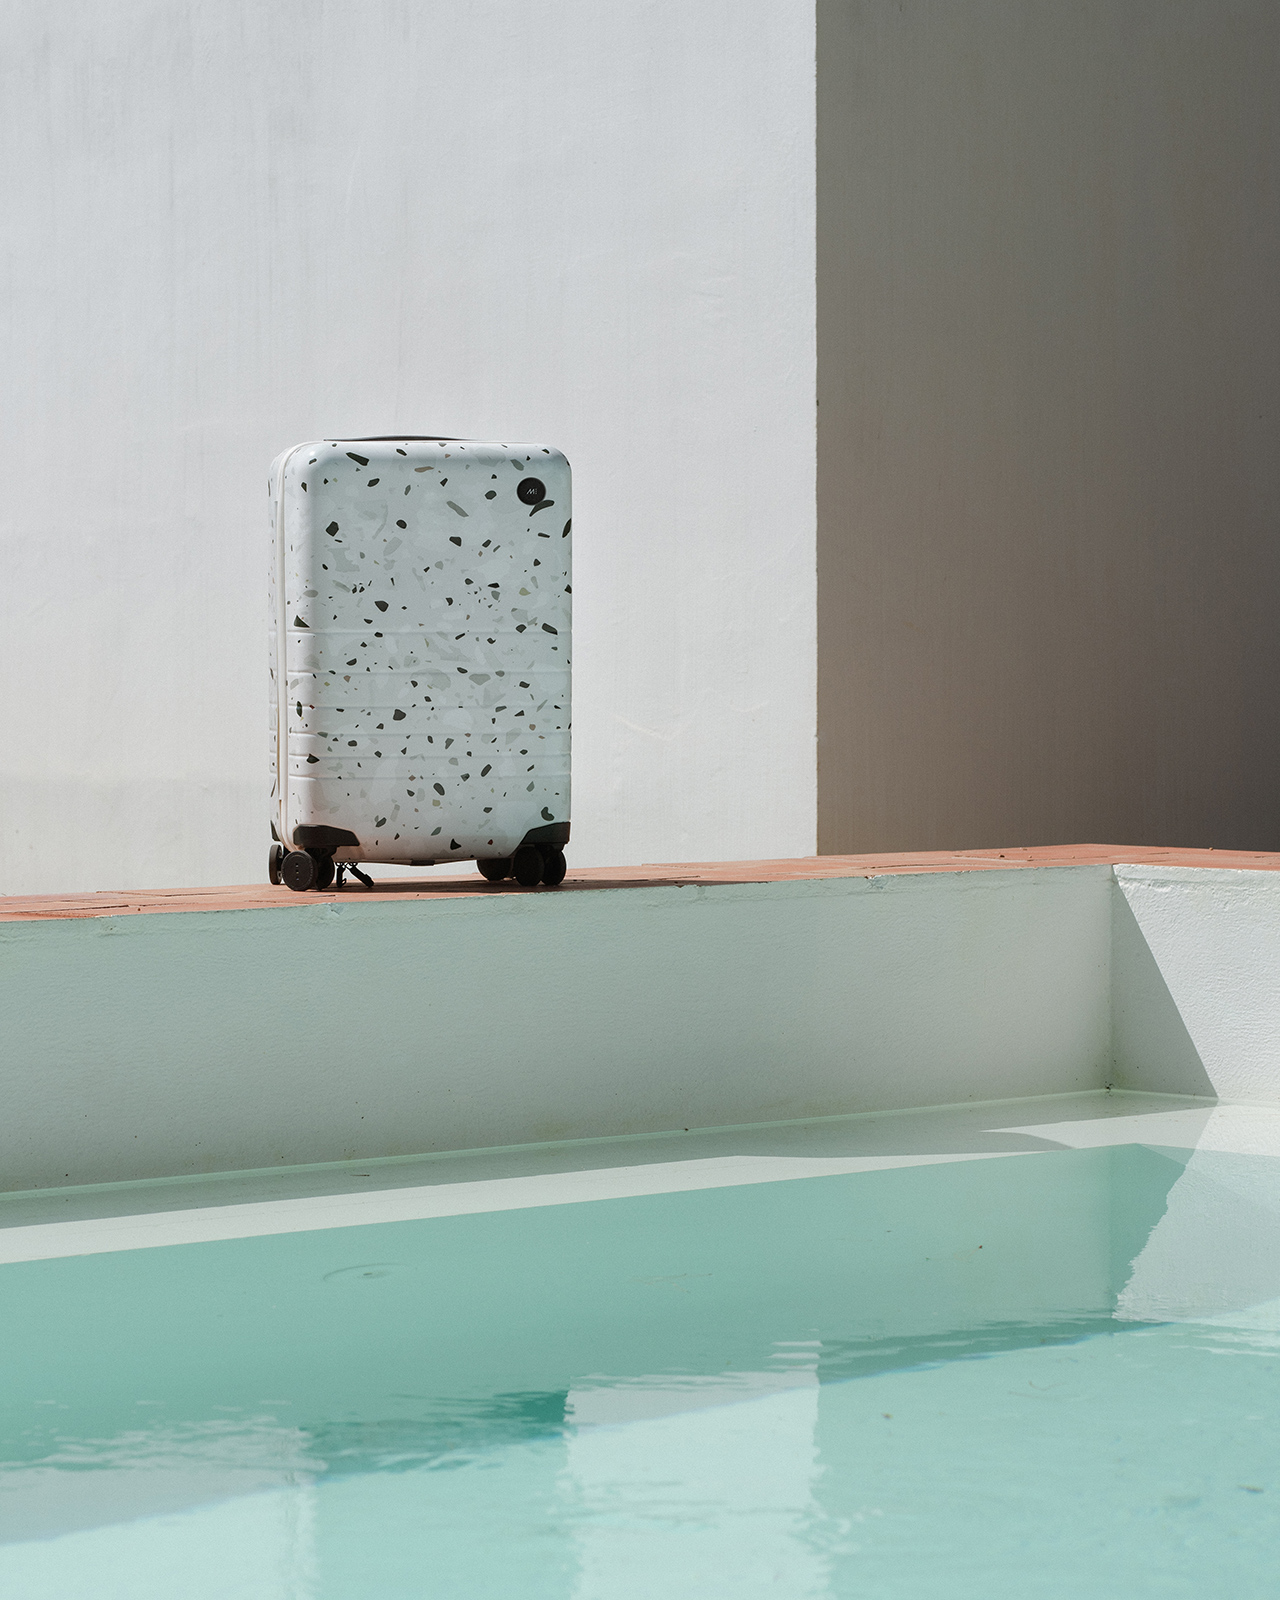 Monos are releasing a new Terrazzo print in their line of premium luggage on November 9th